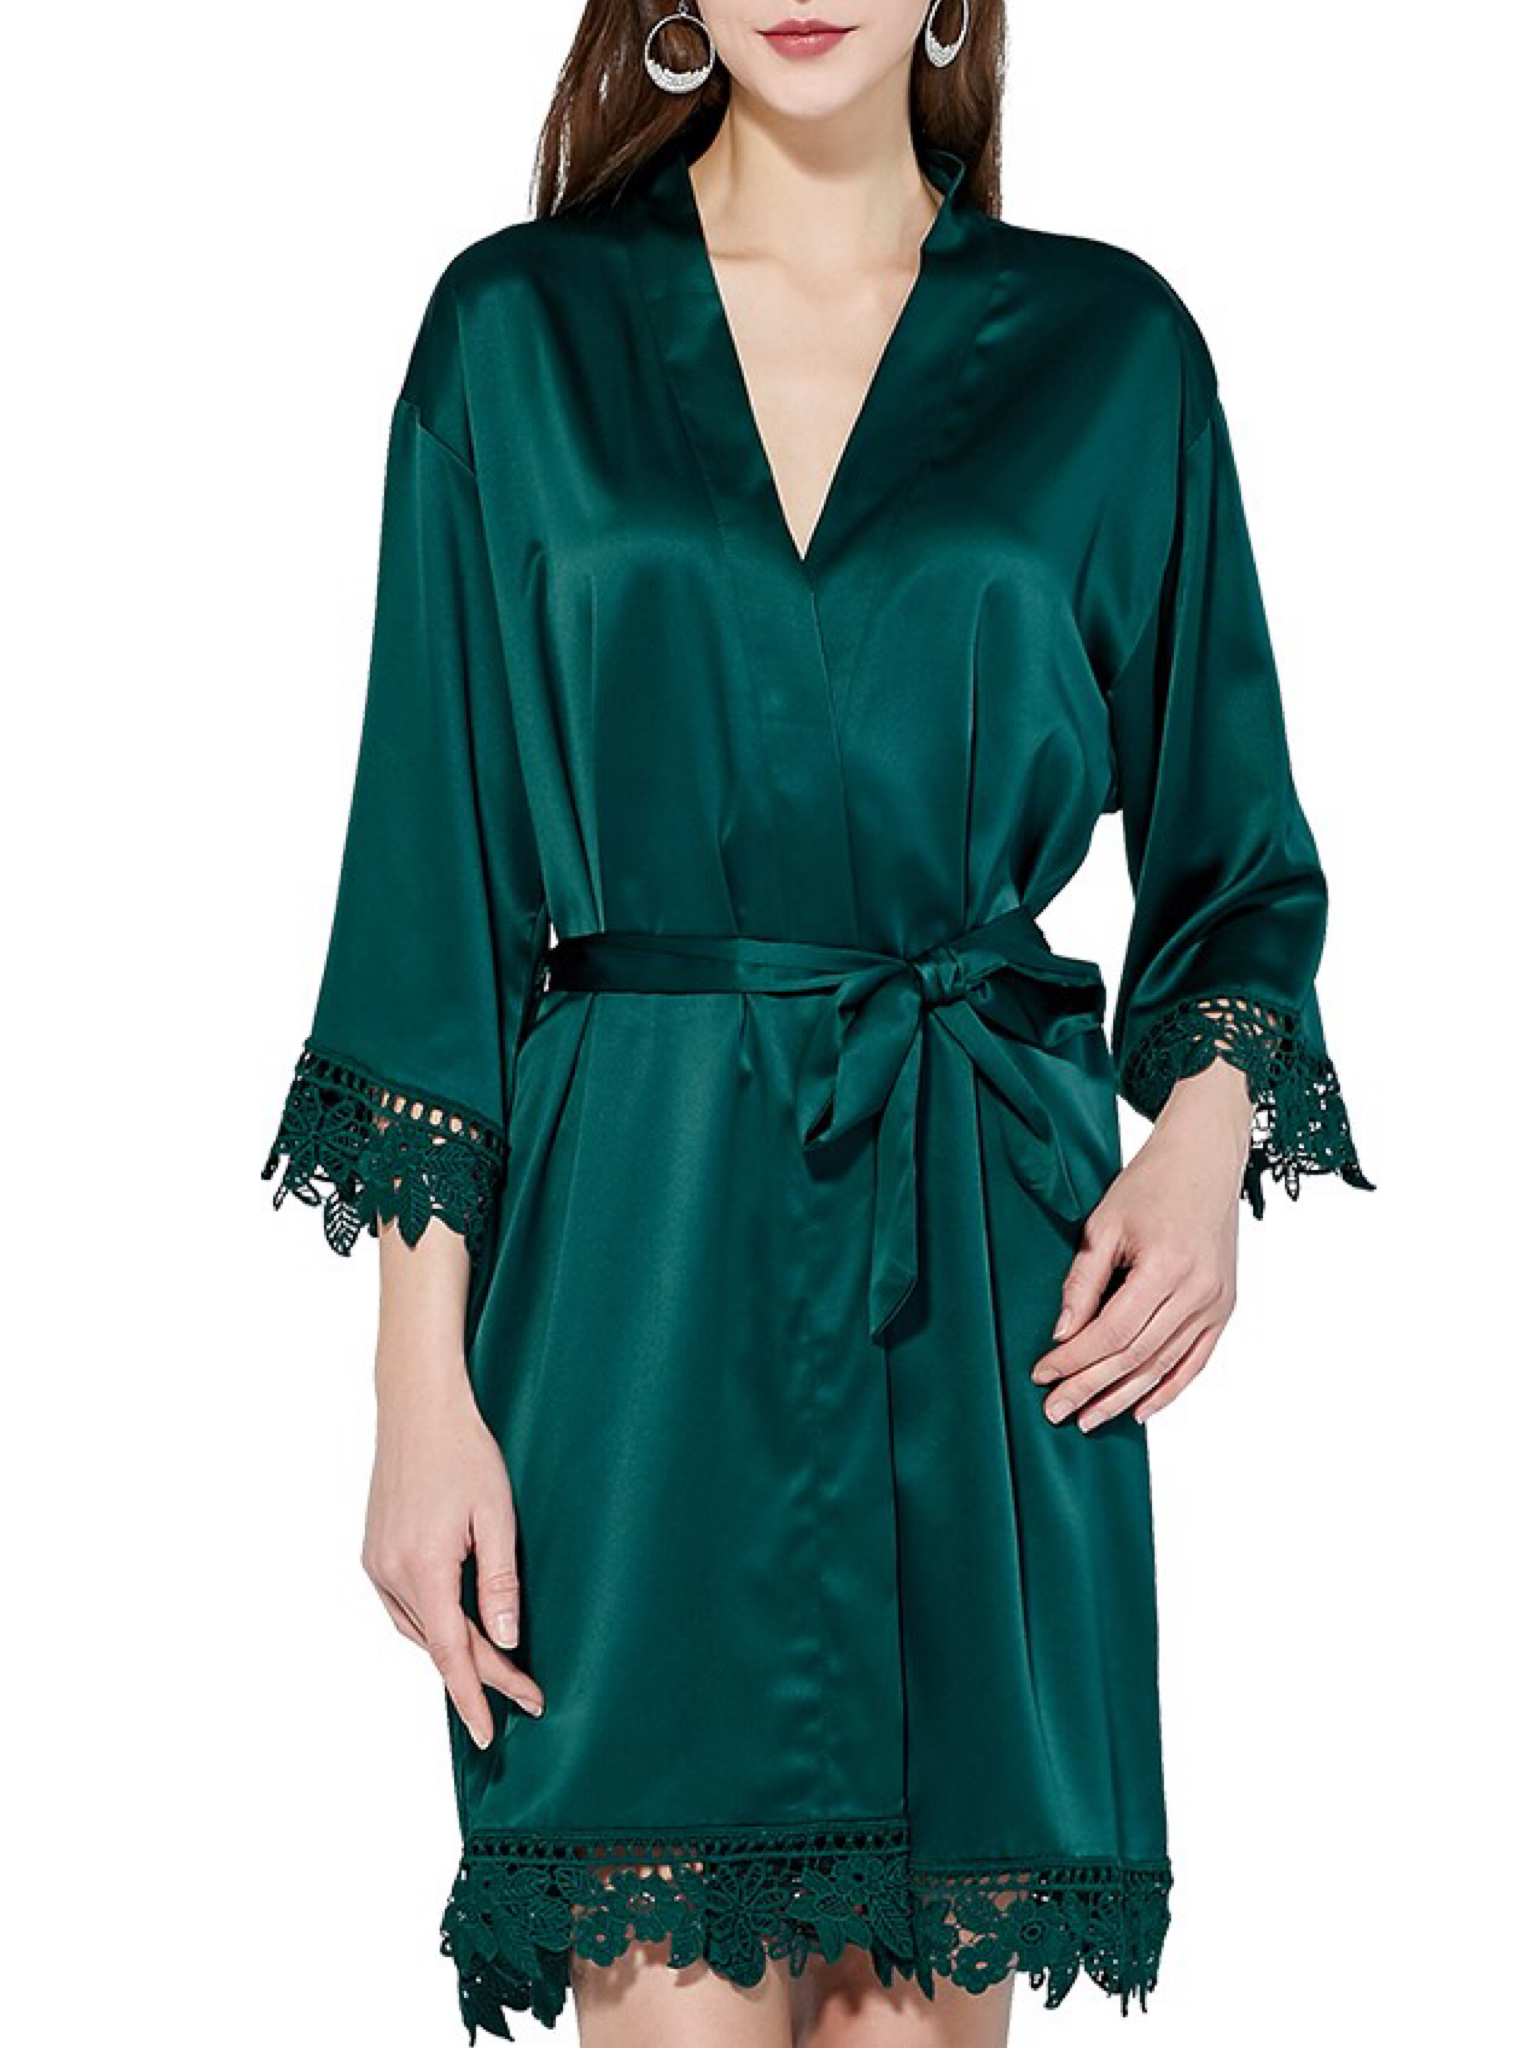 New 2020 Aurora Satin Emerald Green